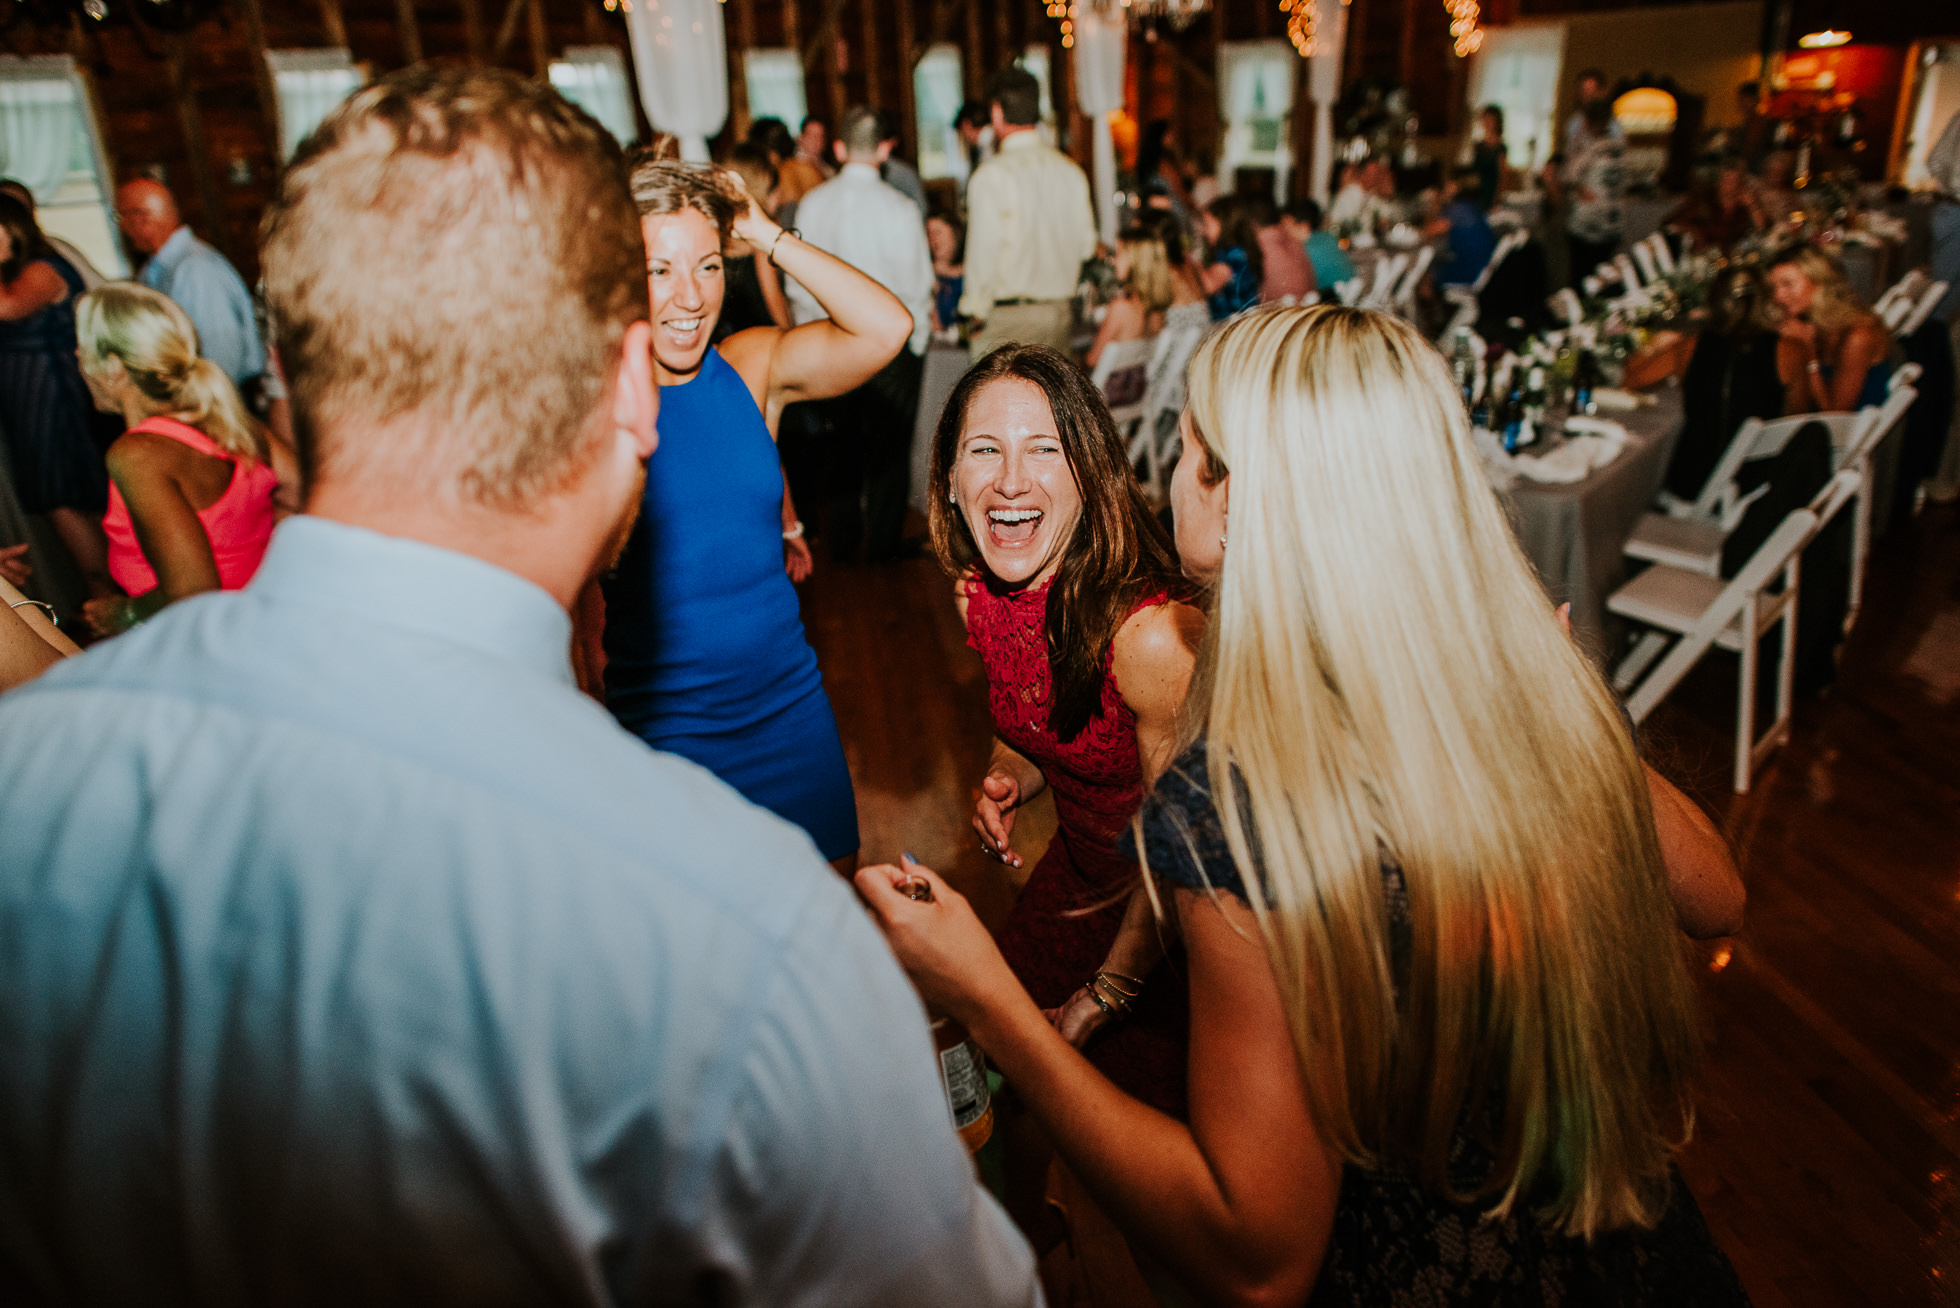 guests partying at olde tater barn wedding in central bridge, ny photographed by traverse the tides